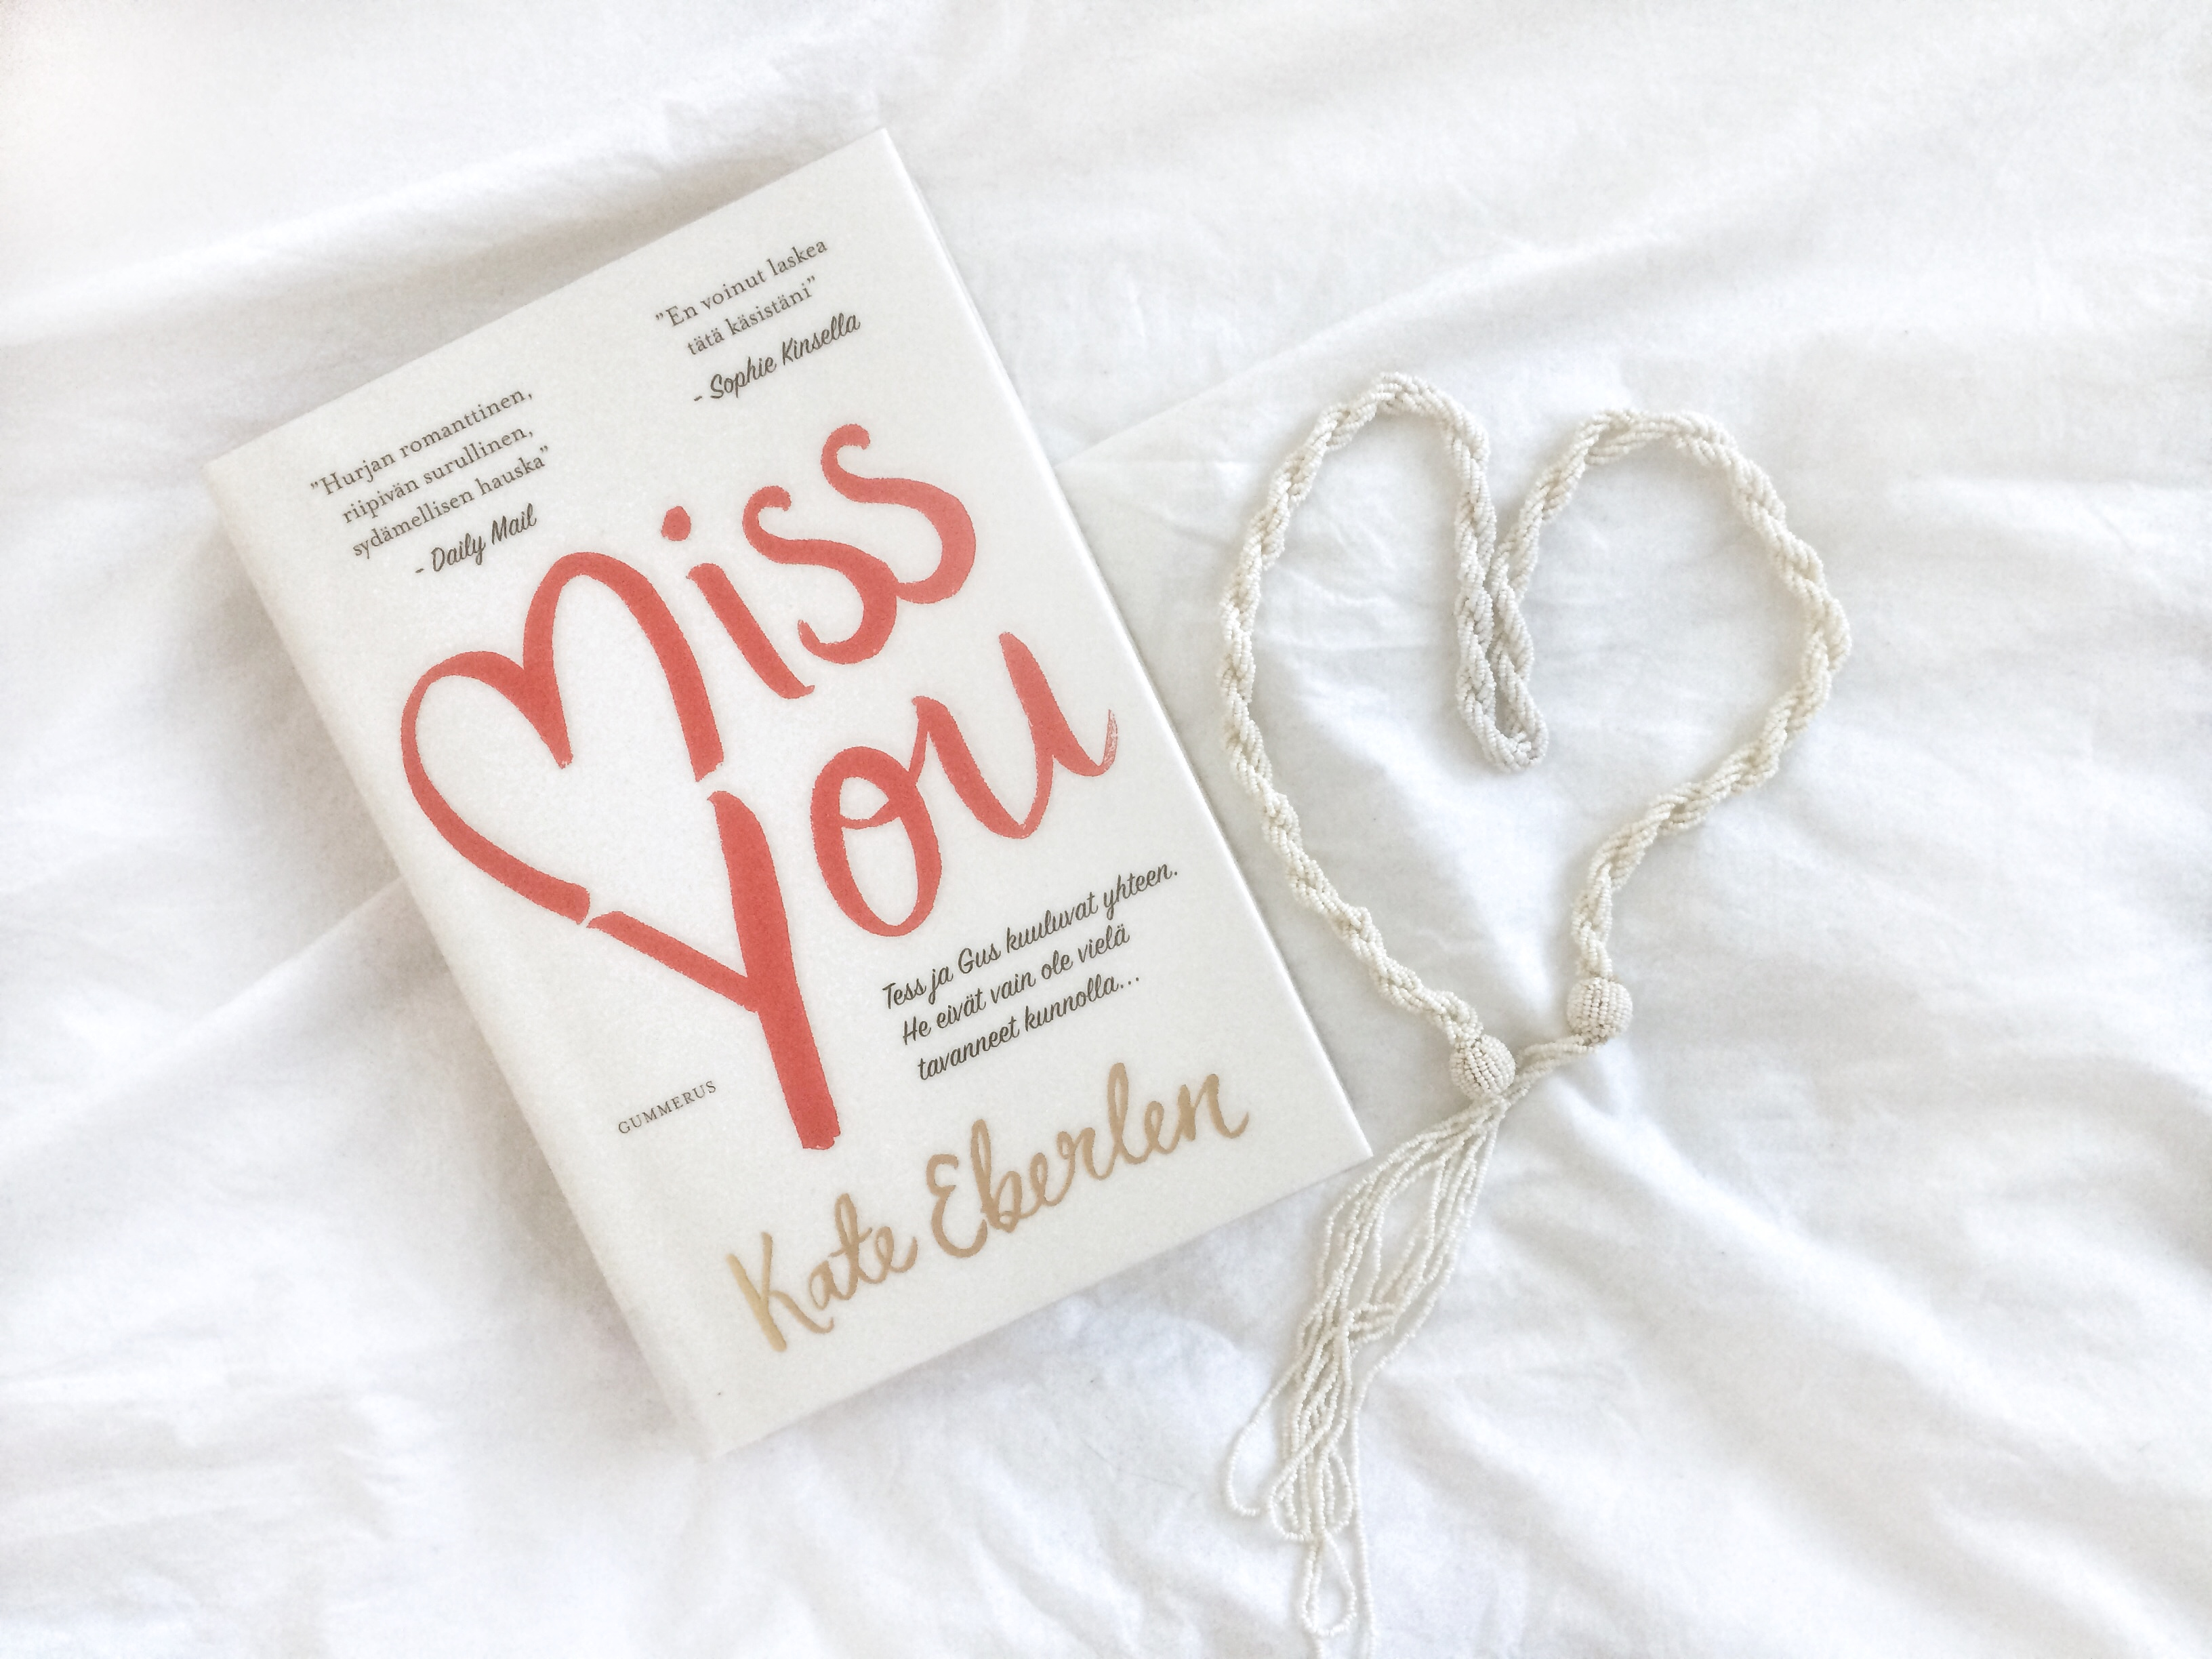 Miss You - Kate Eberlen